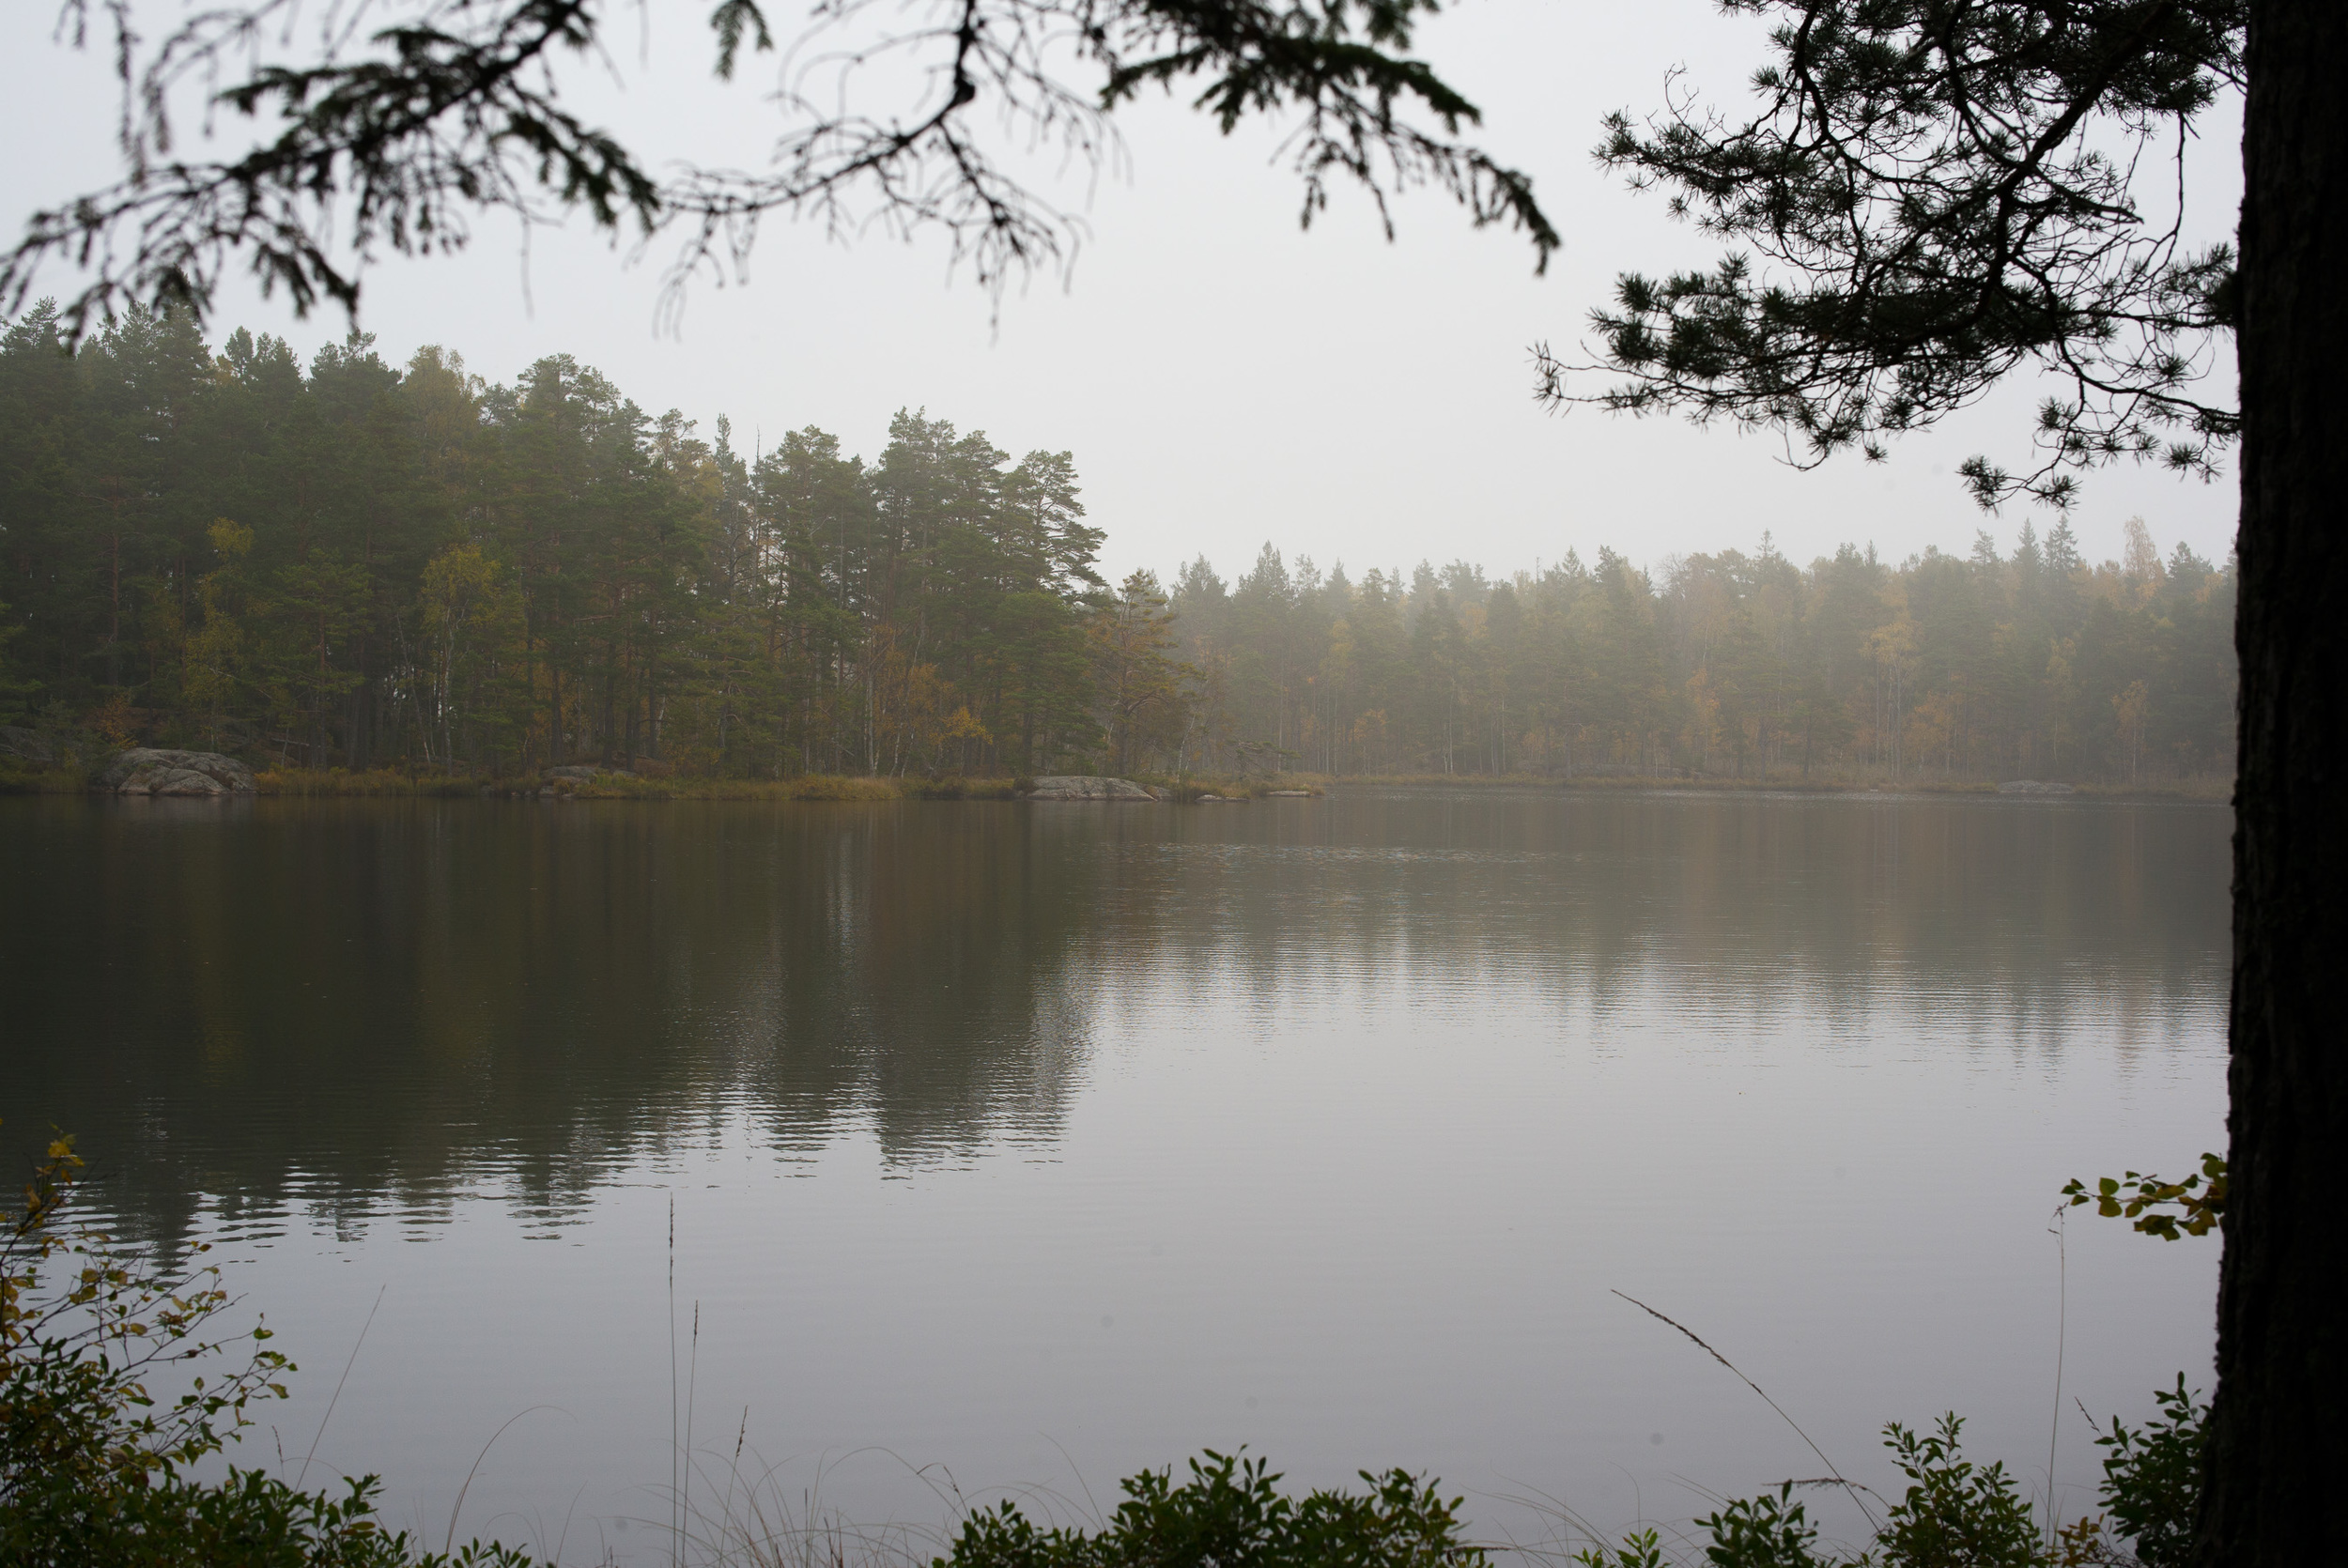 Ars Lake in Tyresta National Park on a cold, misty autumn day.